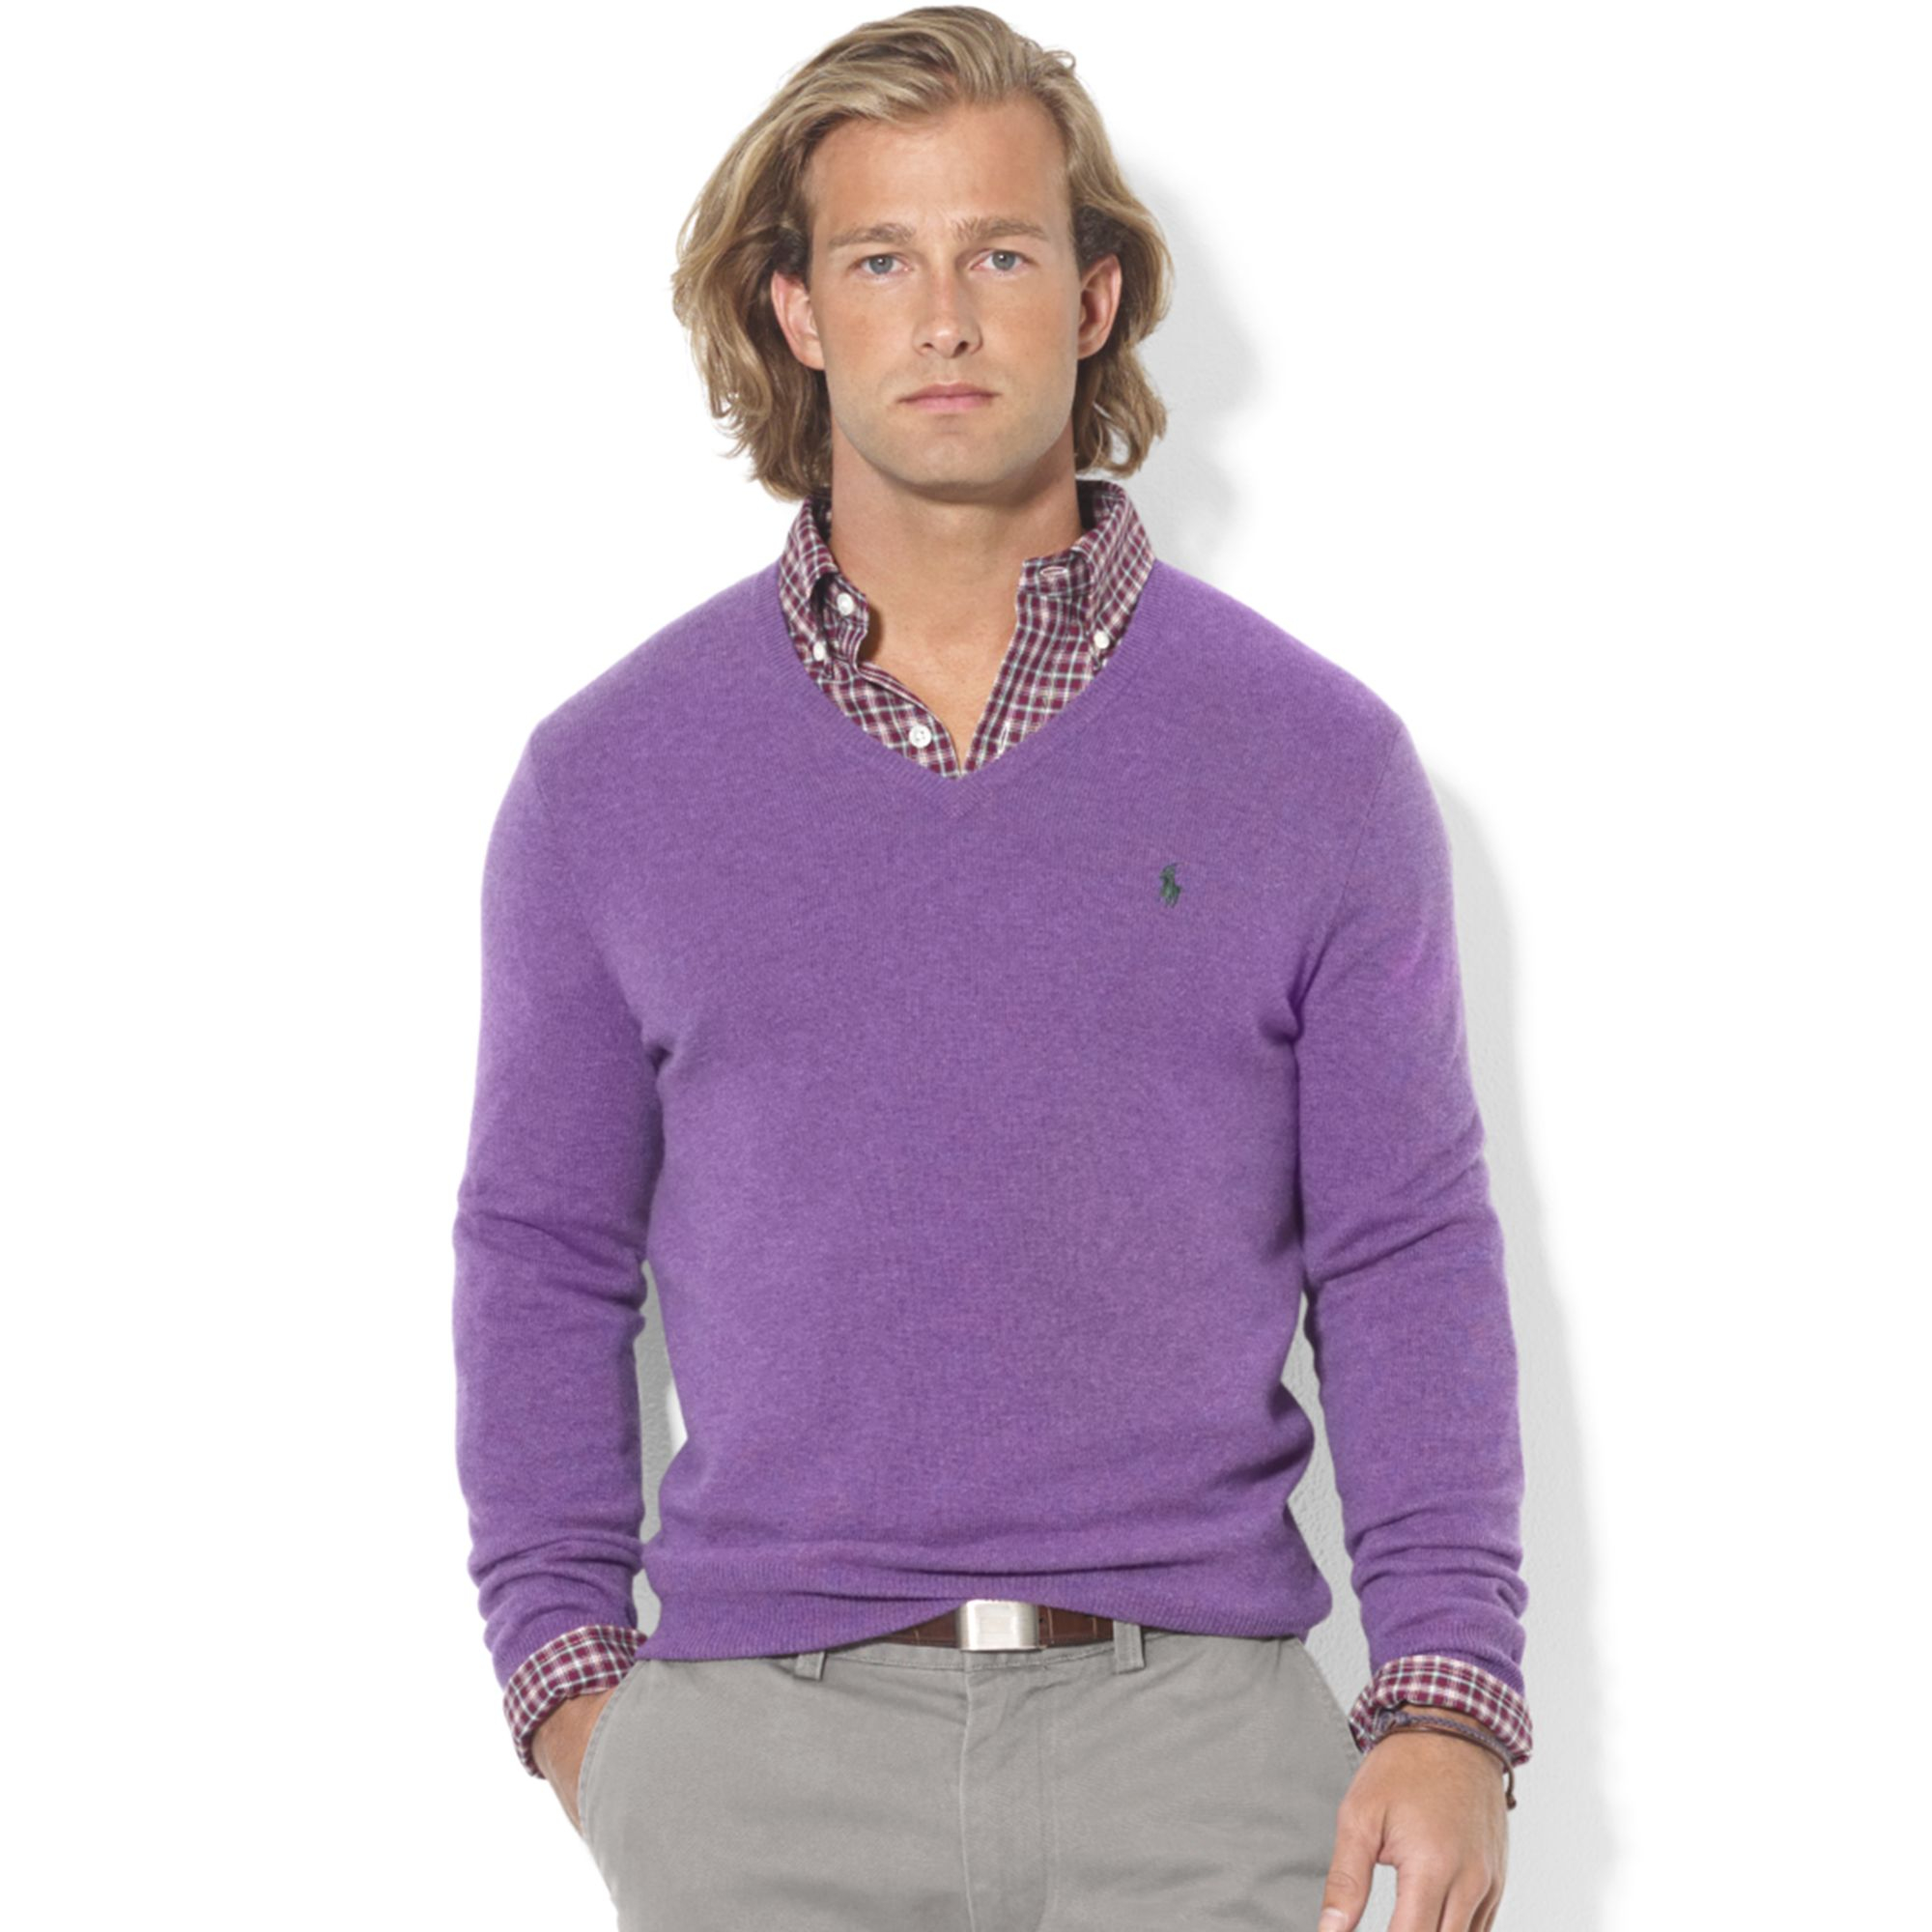 6bbc7da5a Ralph Lauren Vneck Merino Wool Sweater in Purple for Men - Lyst